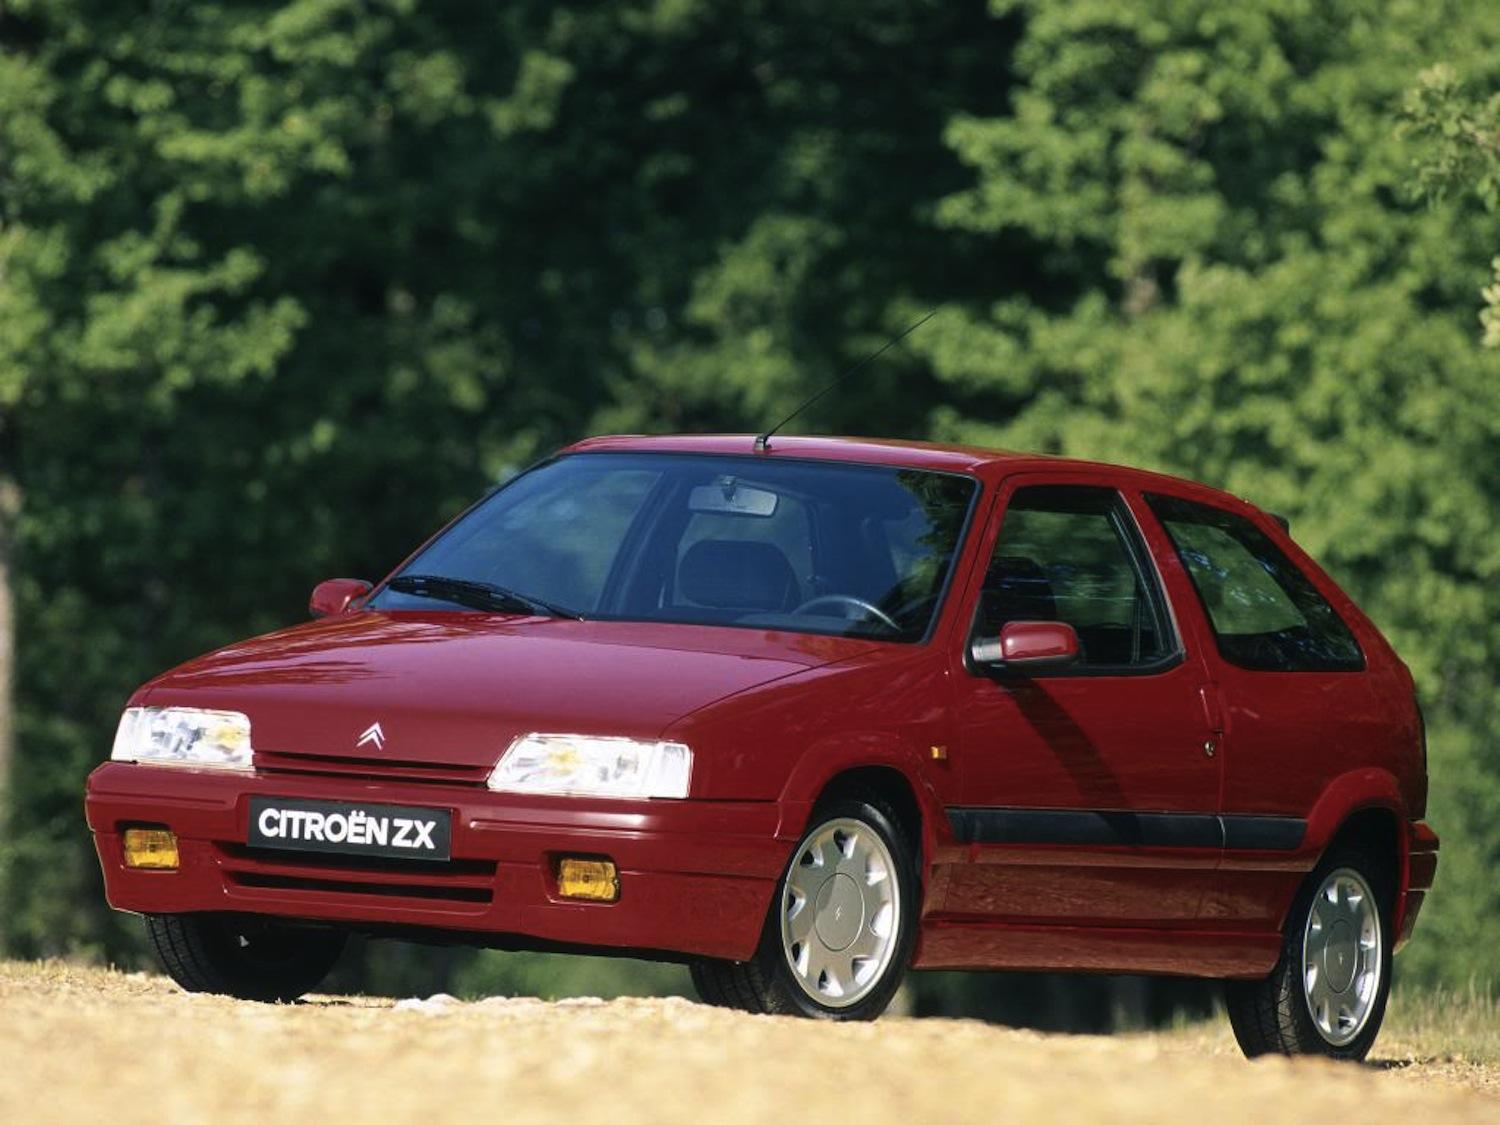 ZX Coupé 16V 155 ch 1993 remote basis of ZX Rallye Raid